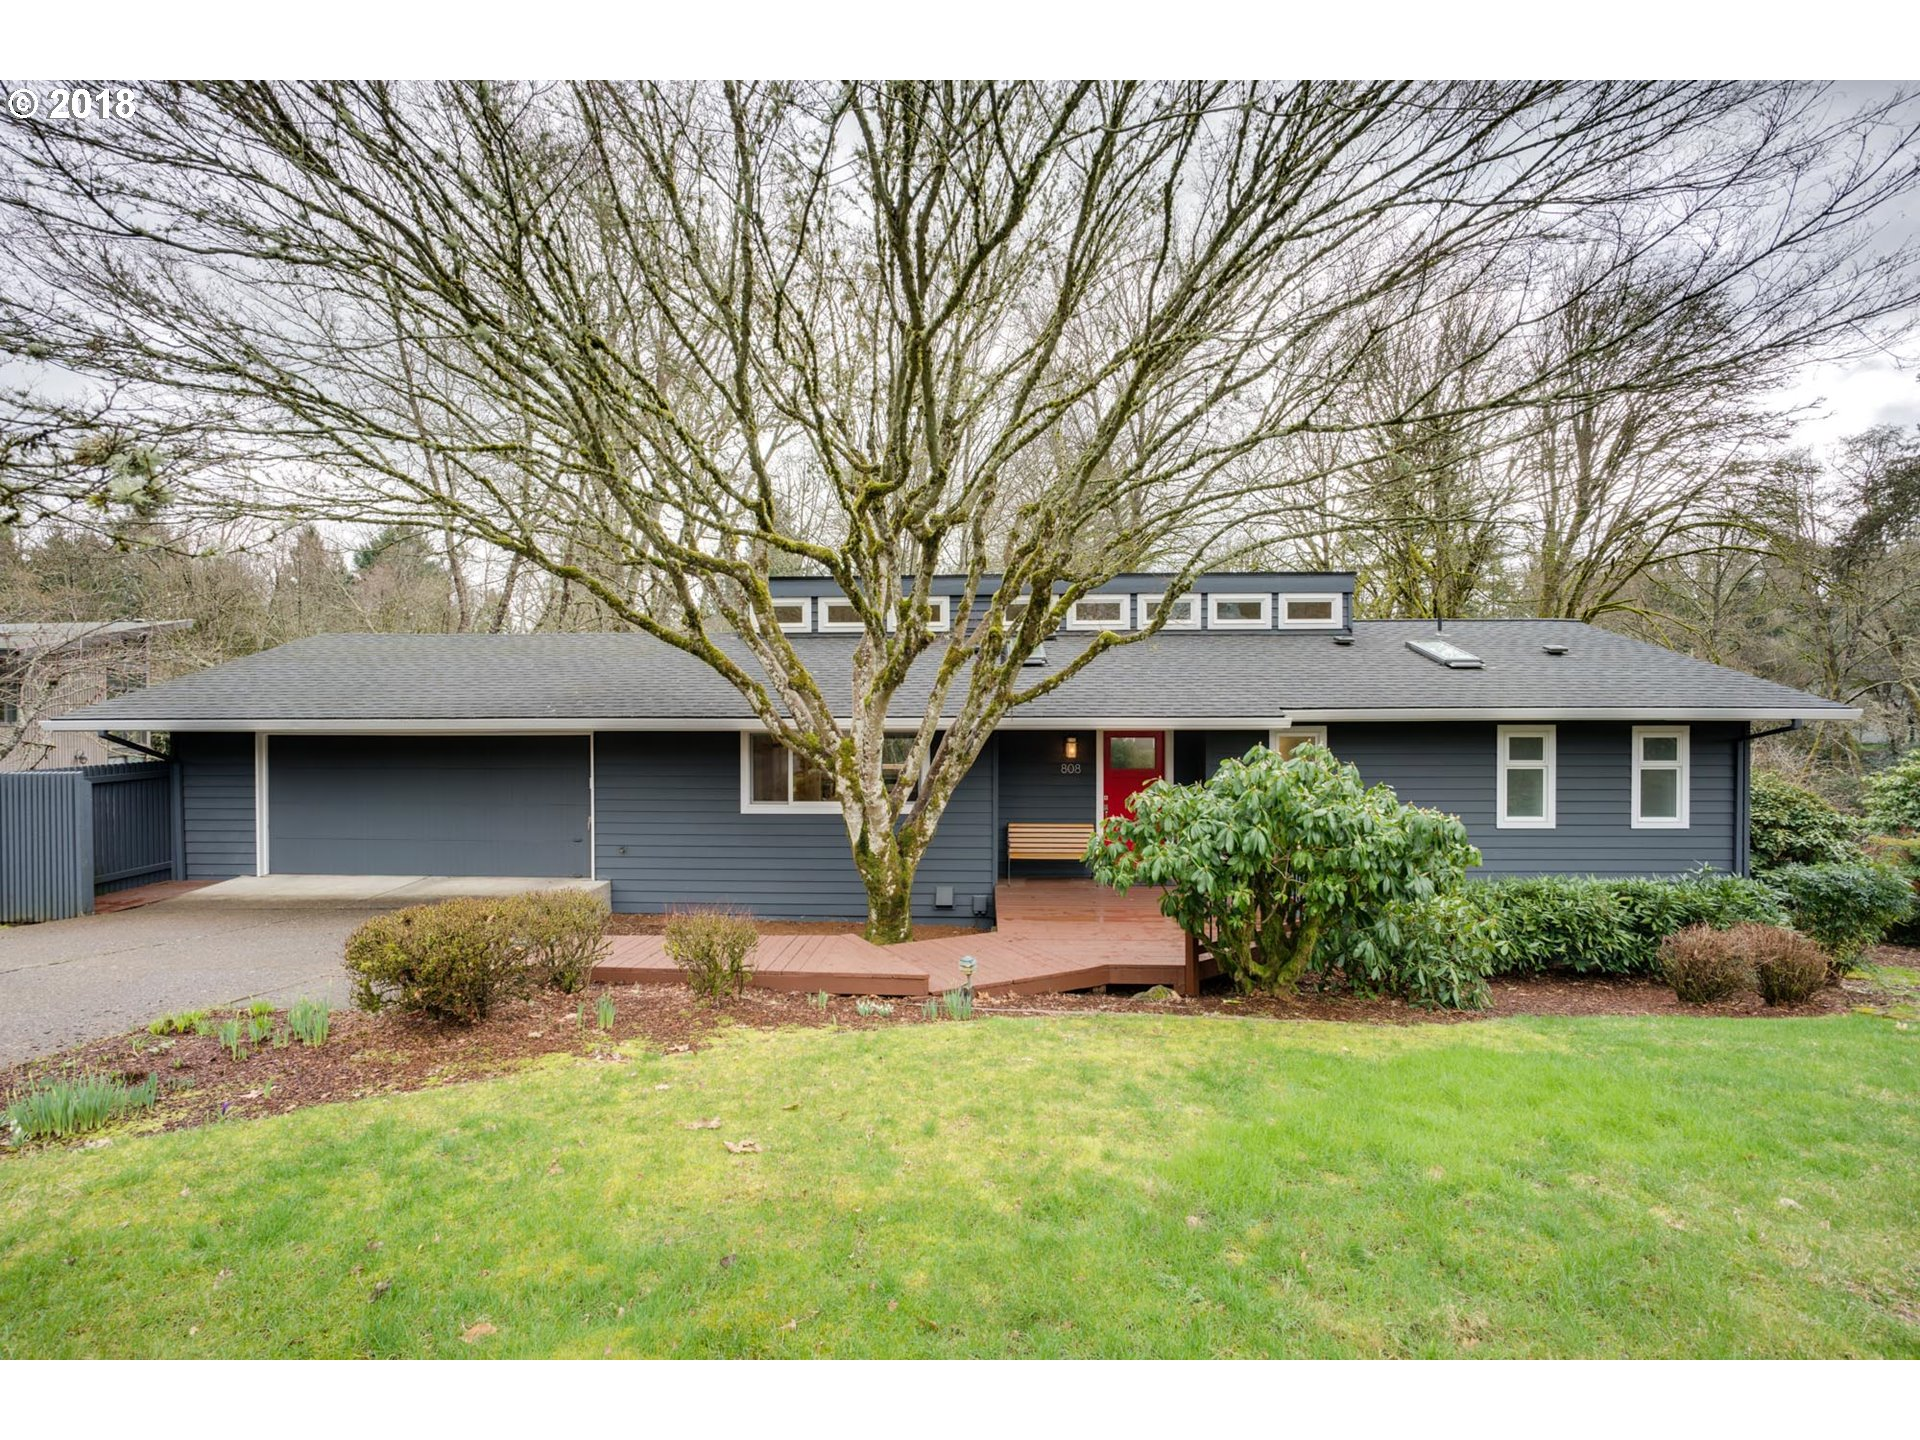 808 TIMBERLINE DR, Lake Oswego, OR 97034